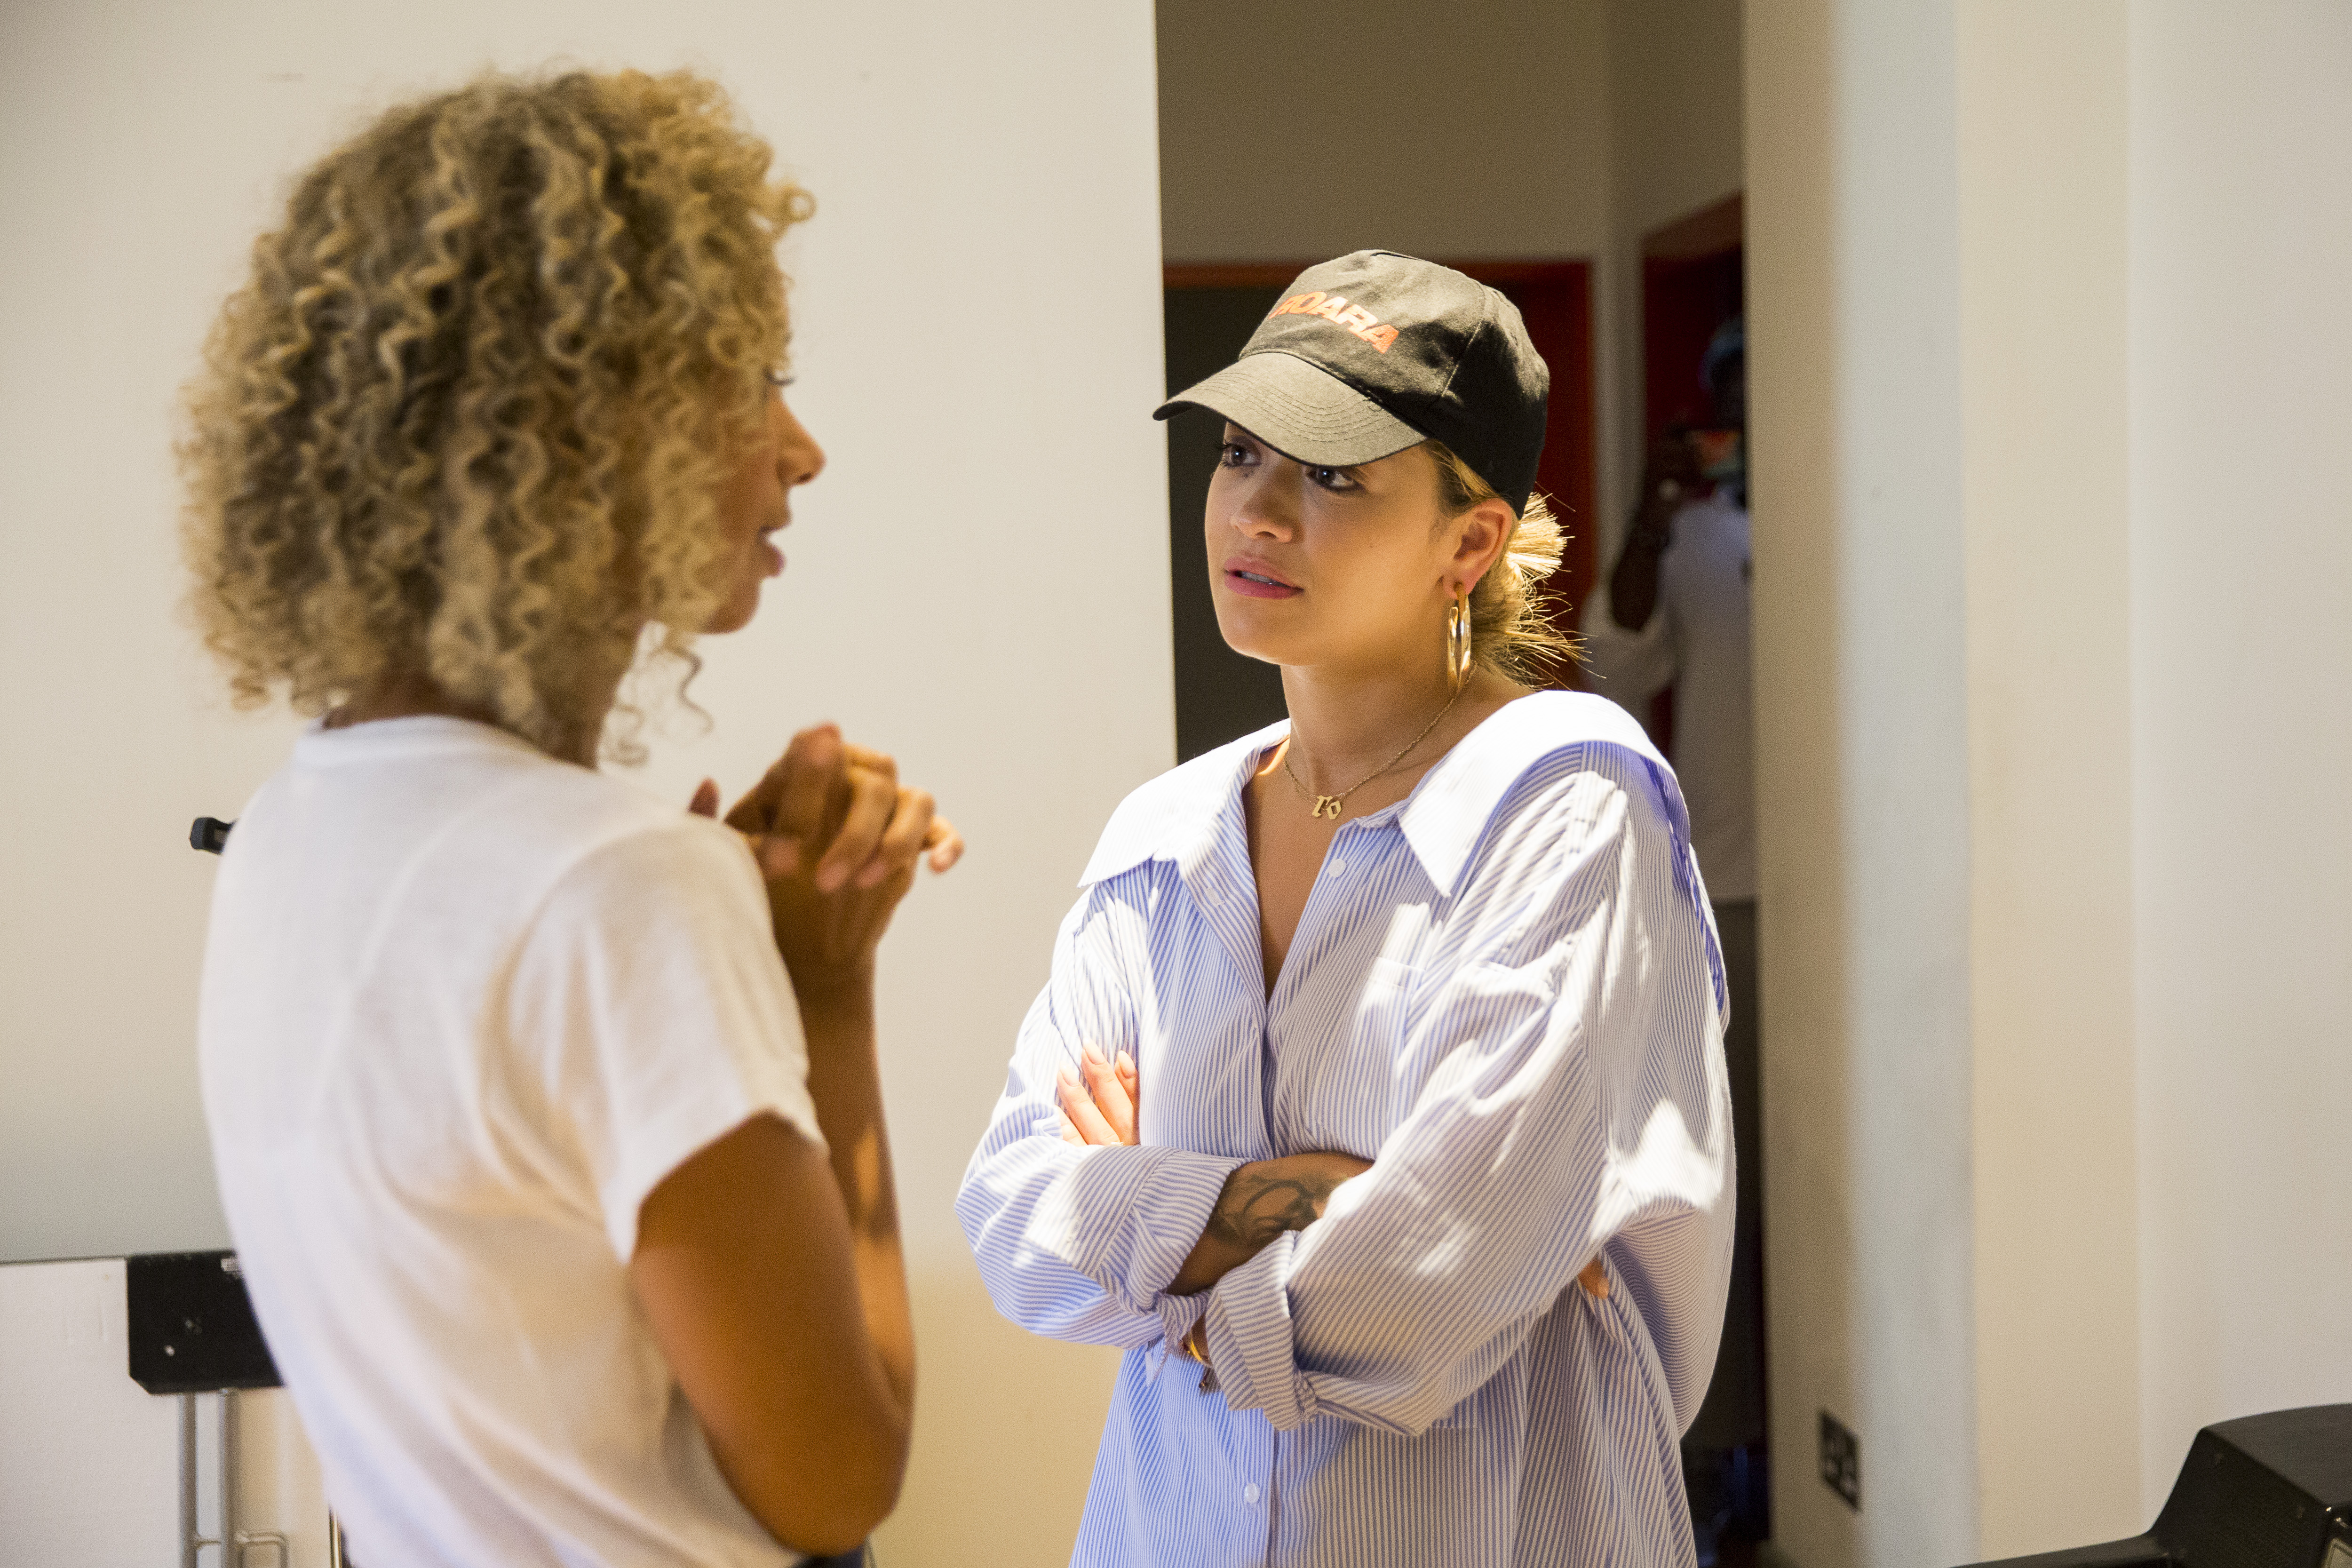 Grenfell Behind the scenes Rita Ora and Leona Lewi